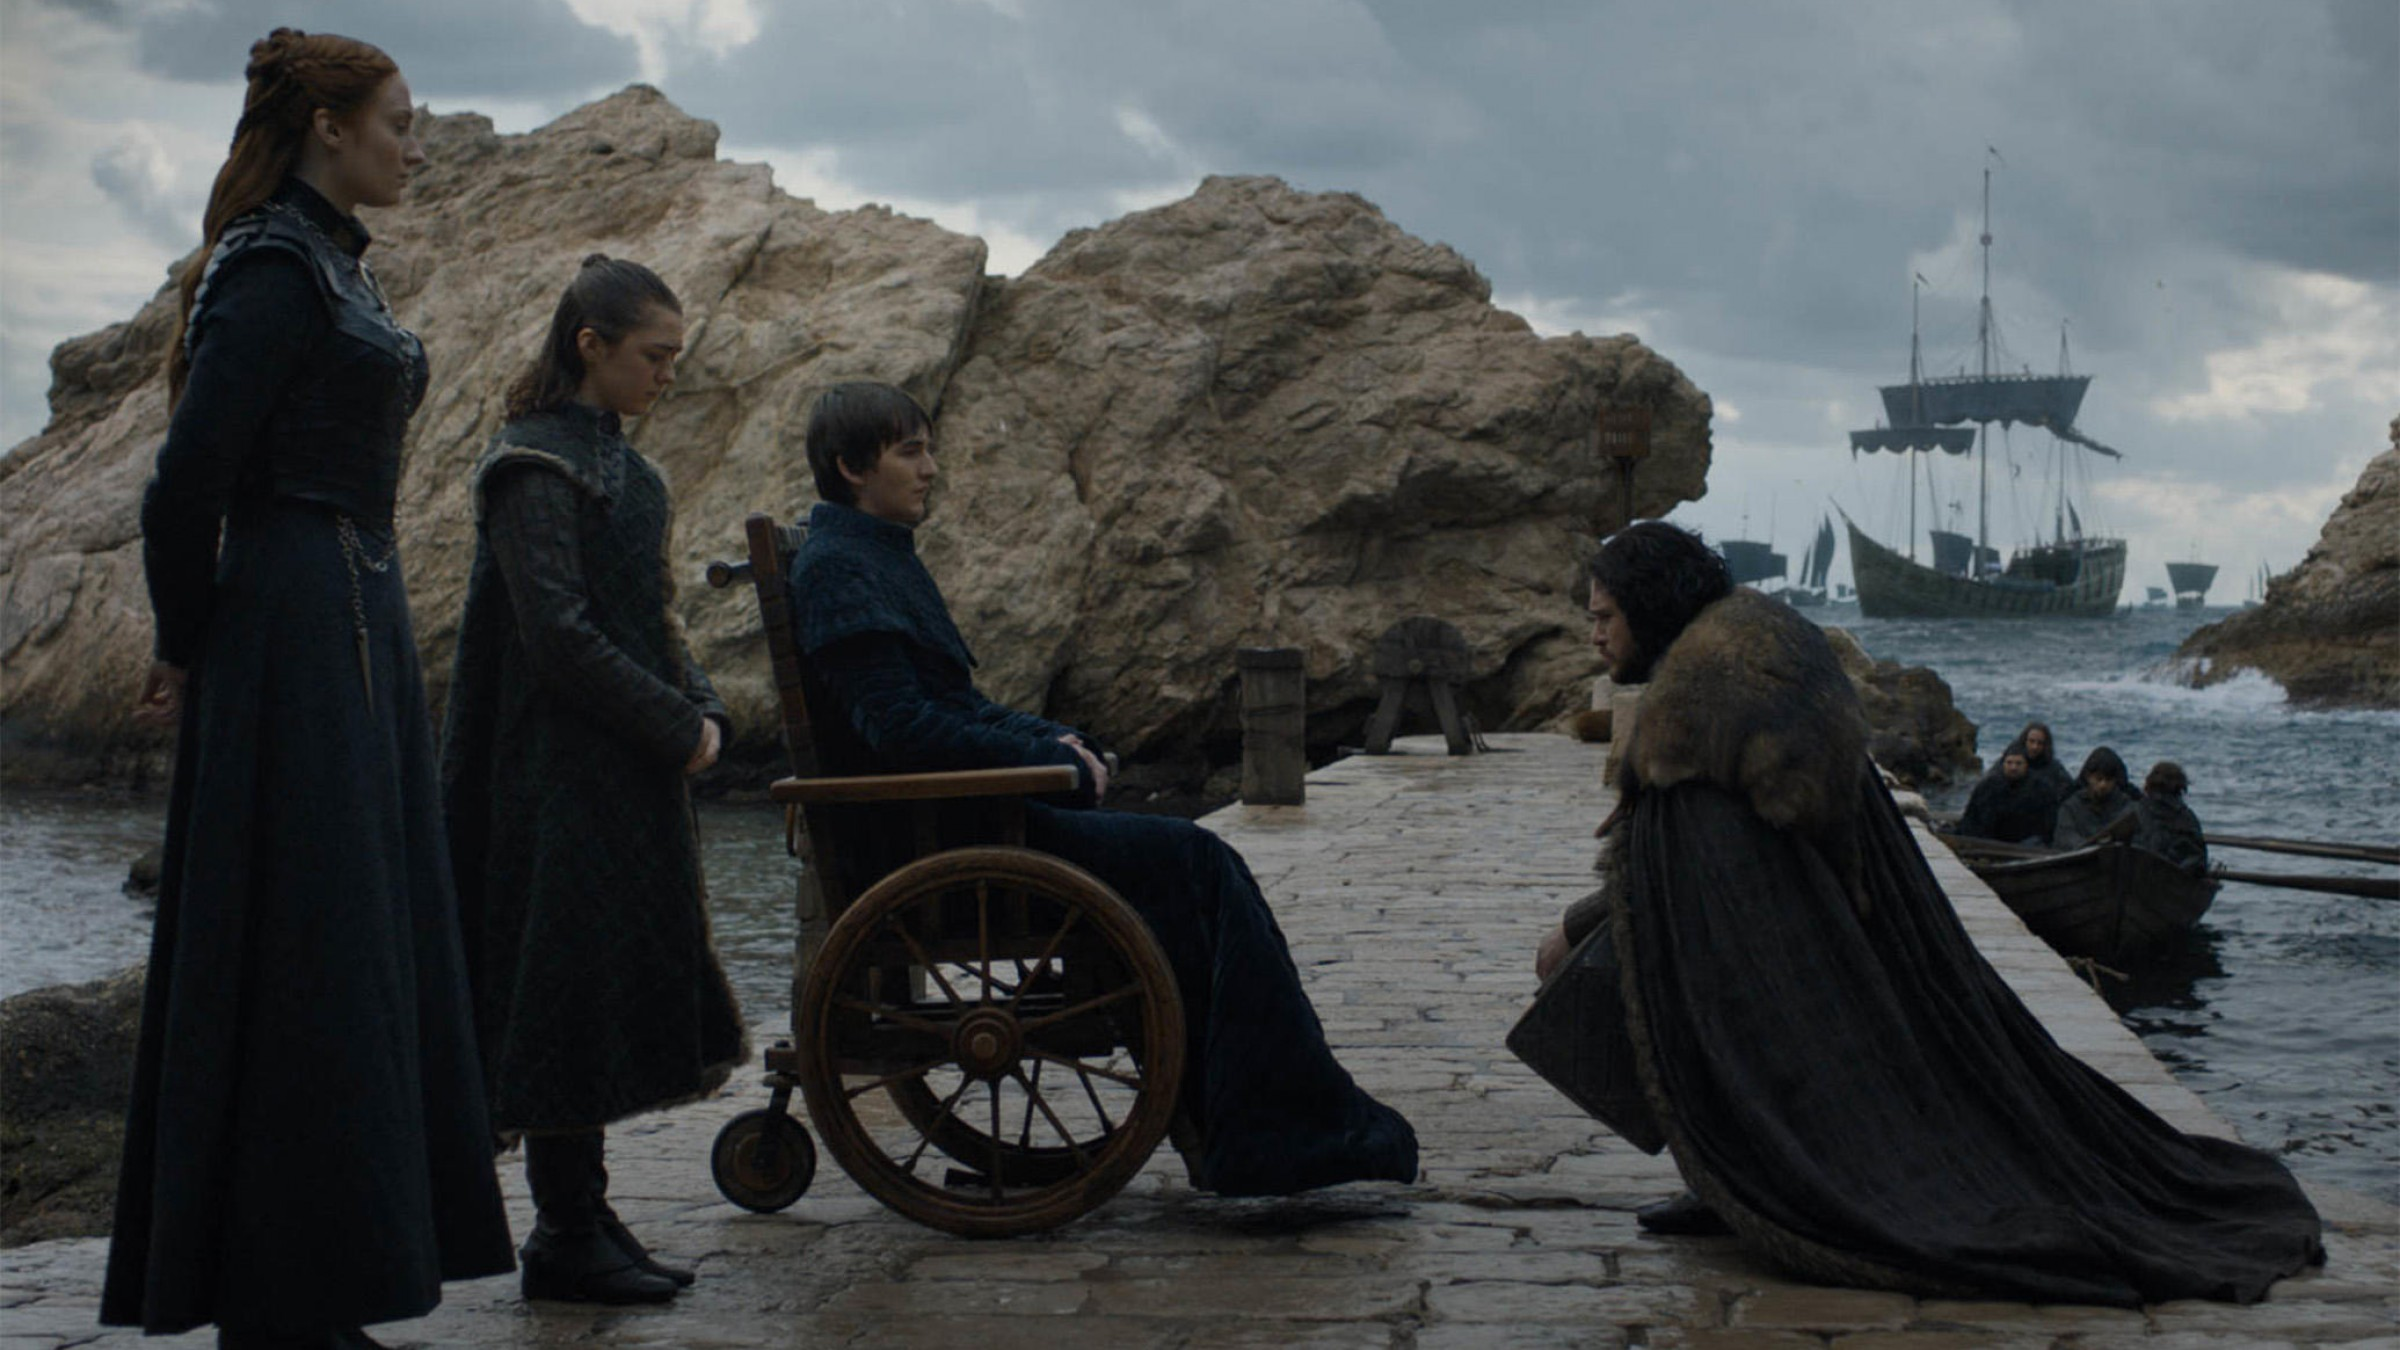 'Game of Thrones' Ends, War Against ATA Rages On [Podcast]